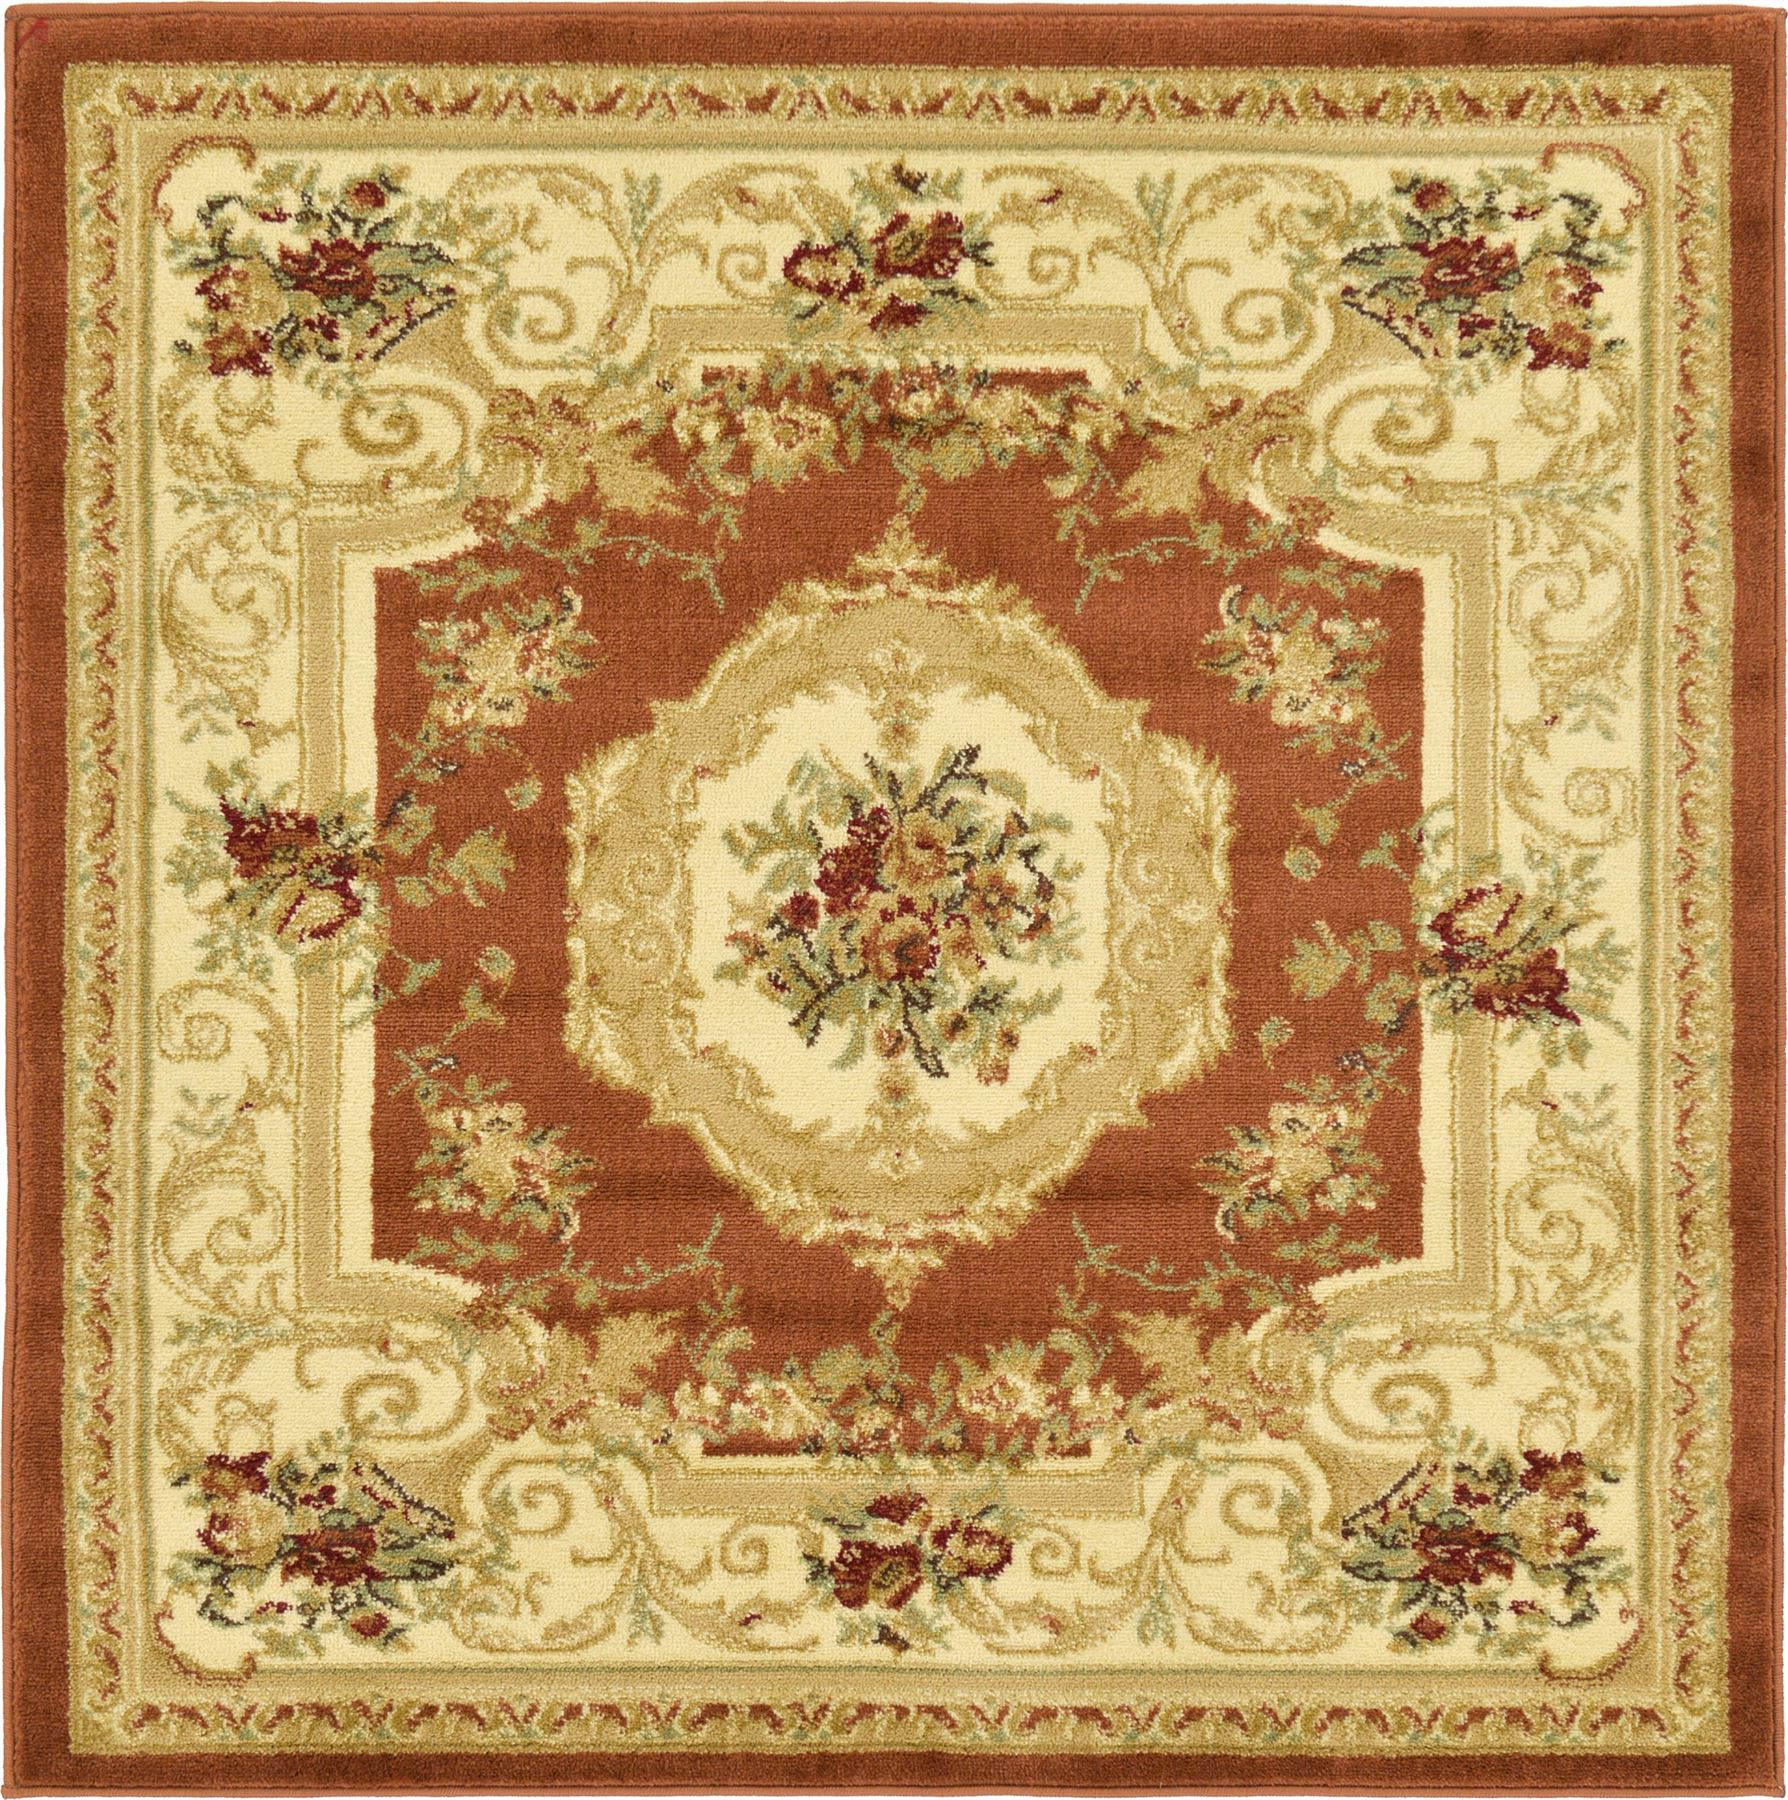 Admirable Aubusson Rugs for Sale Ideas | Captivating Aubusson Rugs